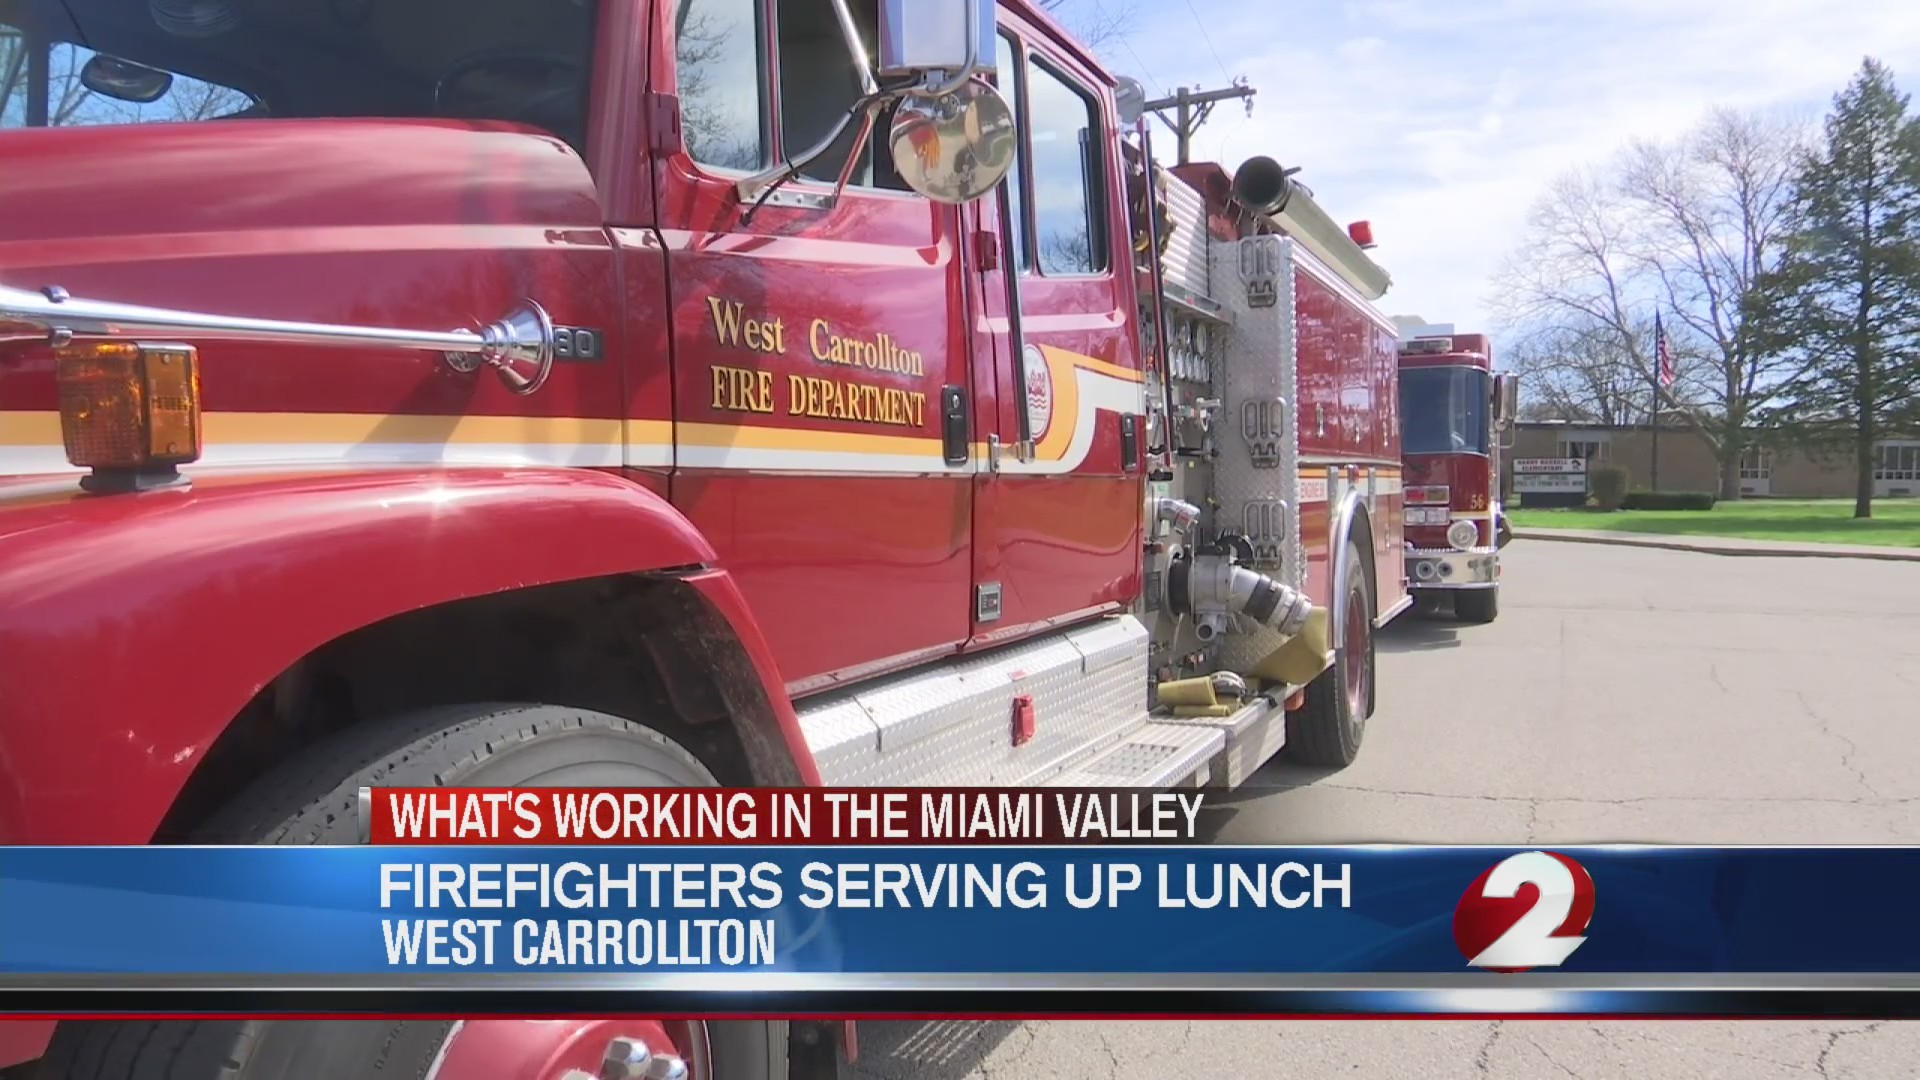 Firefighters serving up lunch in West Carrollton